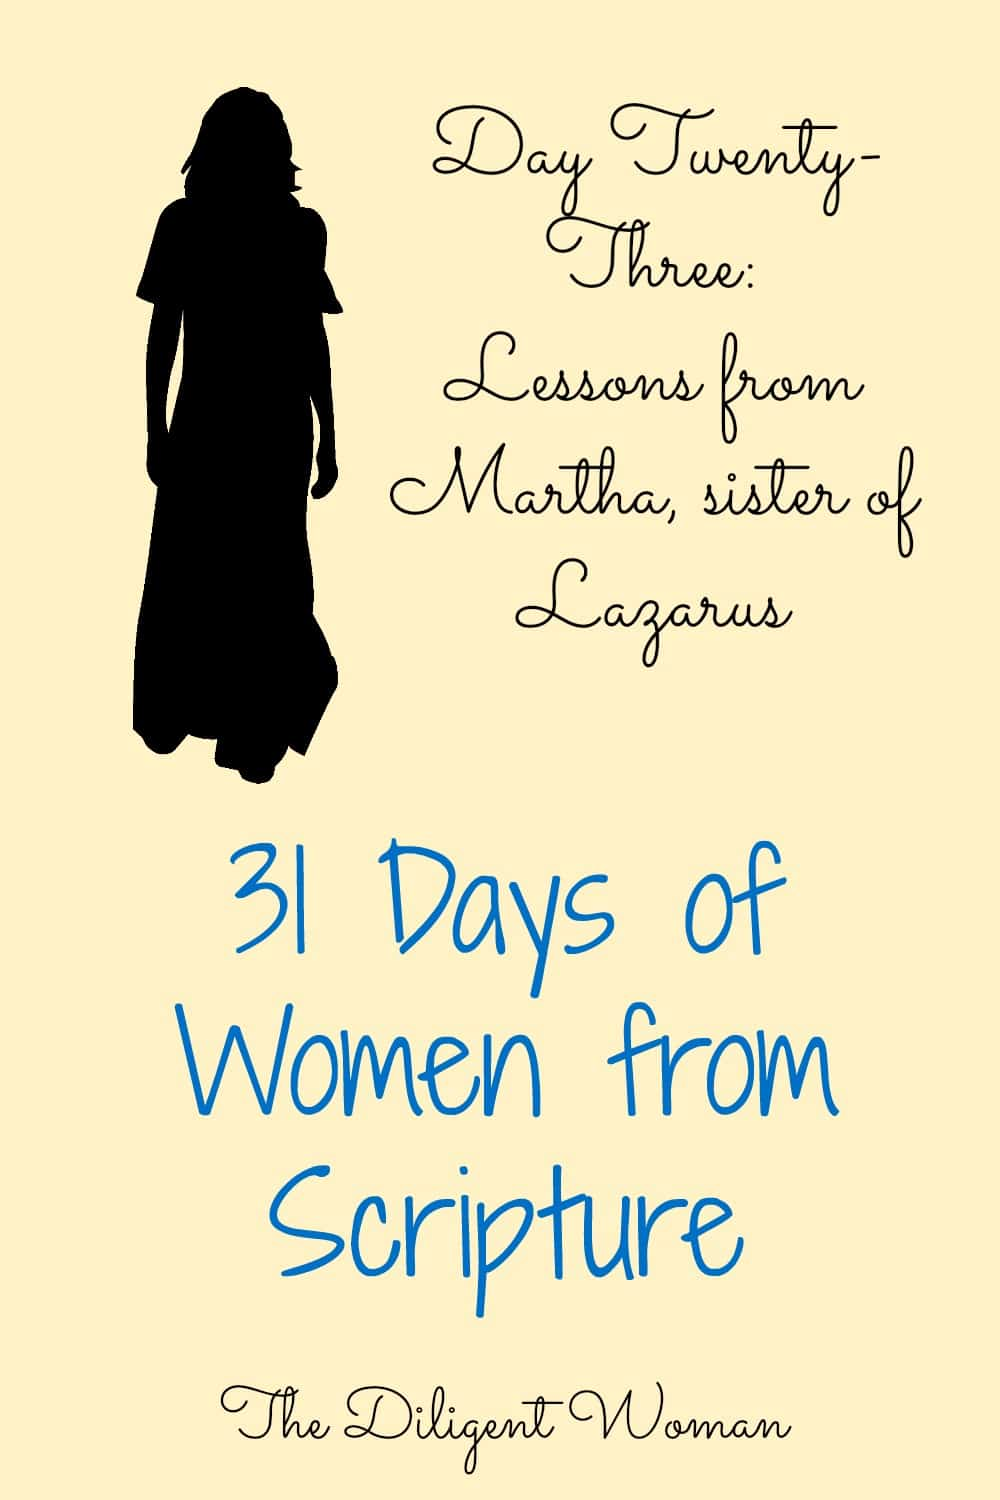 Lessons from Martha, the sister of Lazarus